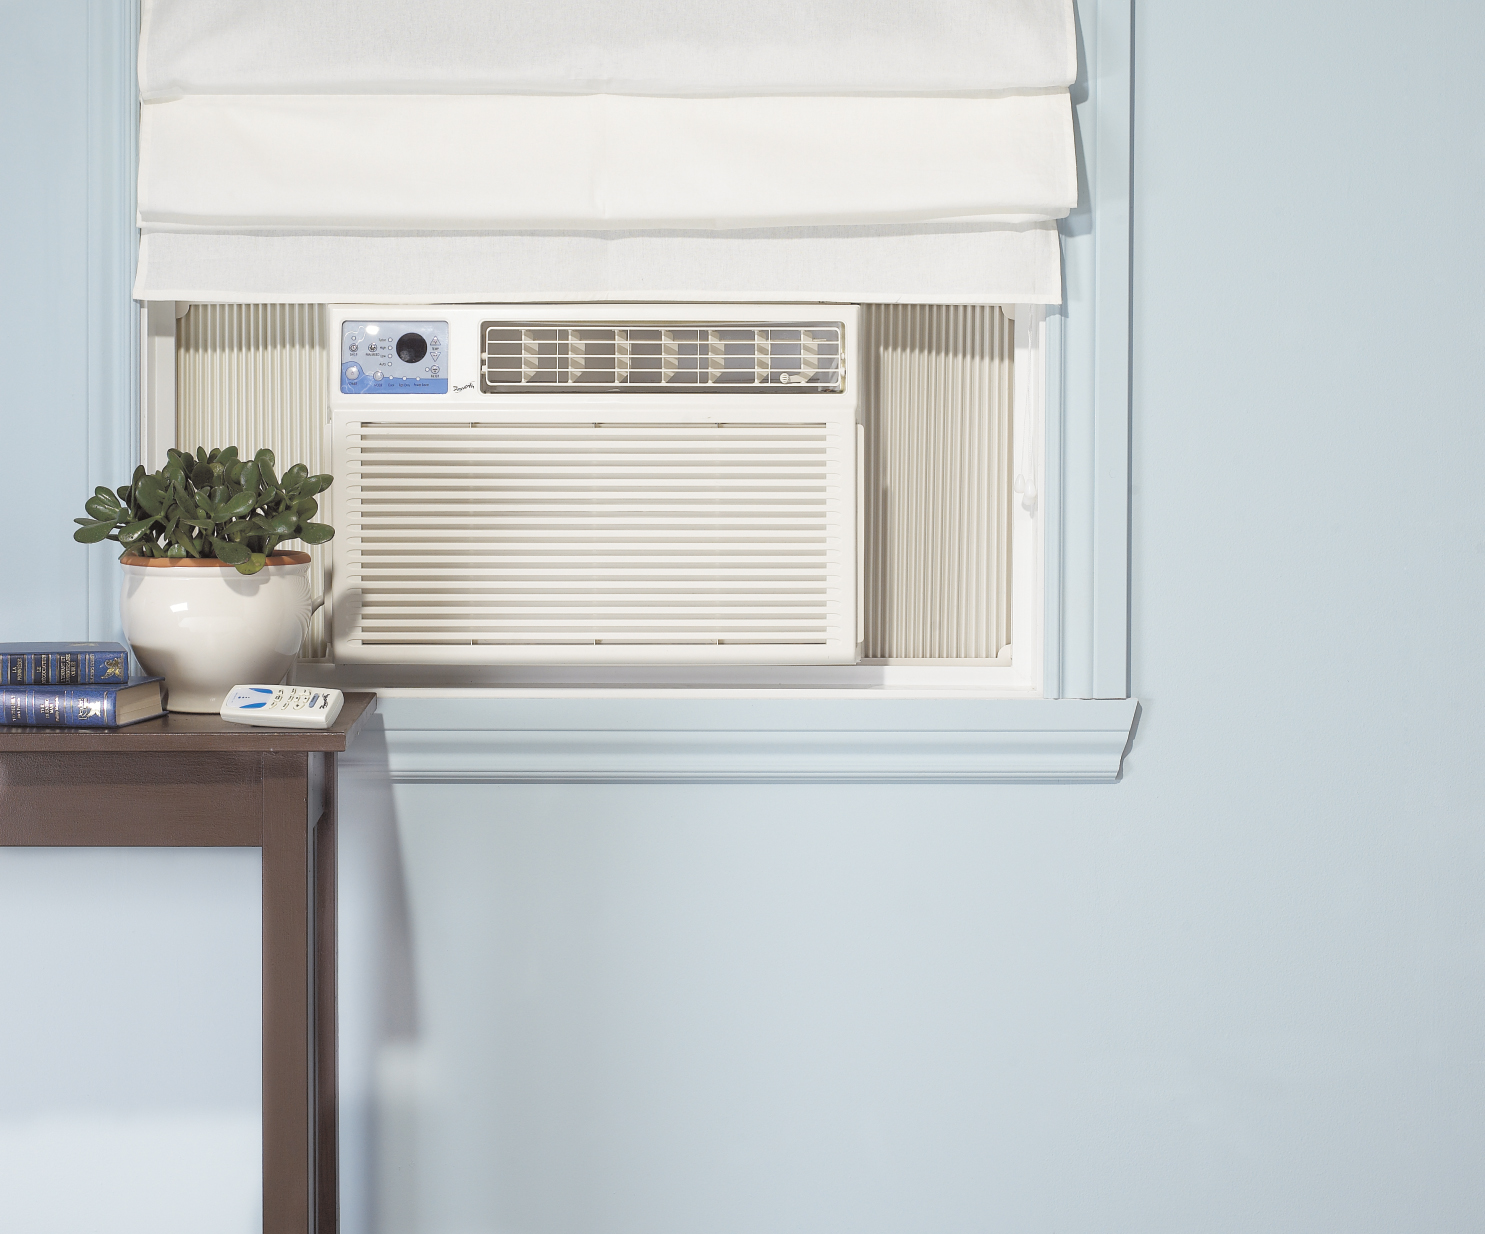 Supplemental air conditioners  ER'S GUIDES RONA RONA #464B61